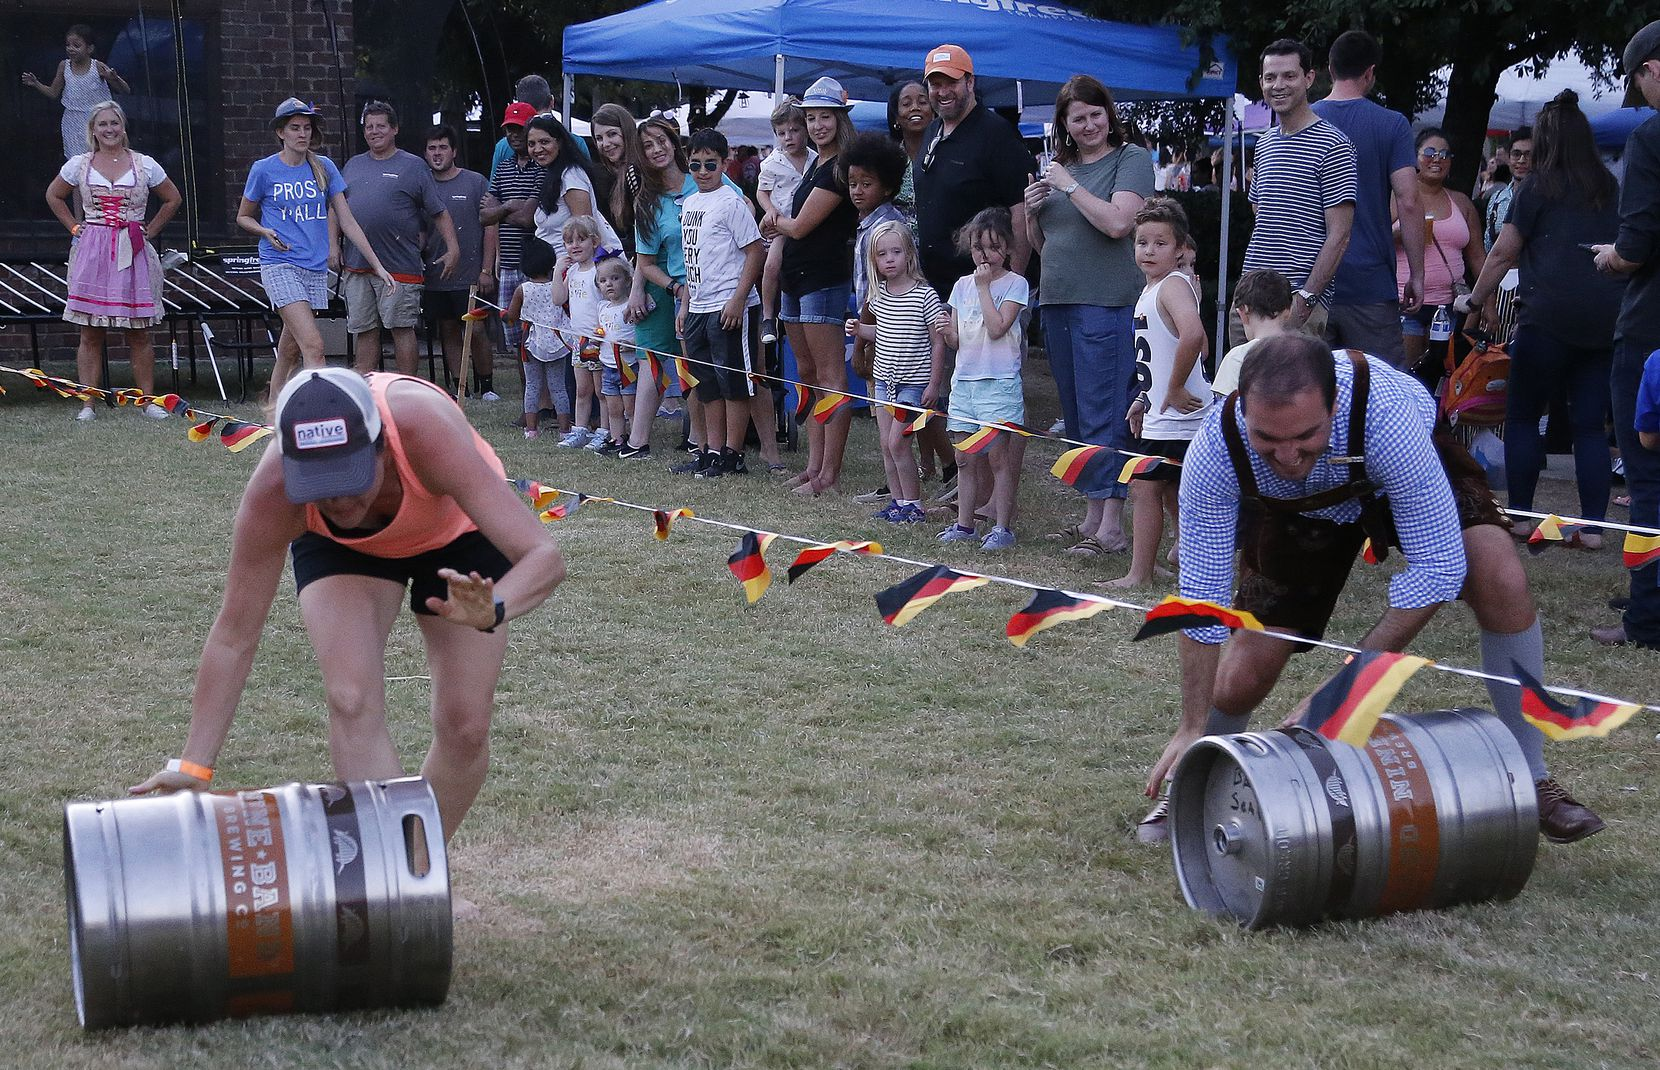 Wendi Ryan of Oak Point races a beer keg against Ryan Renke of Plano during the city of Frisco's 2019 Oktoberfest festival. The 2021 event is set for Oct. 2-3.